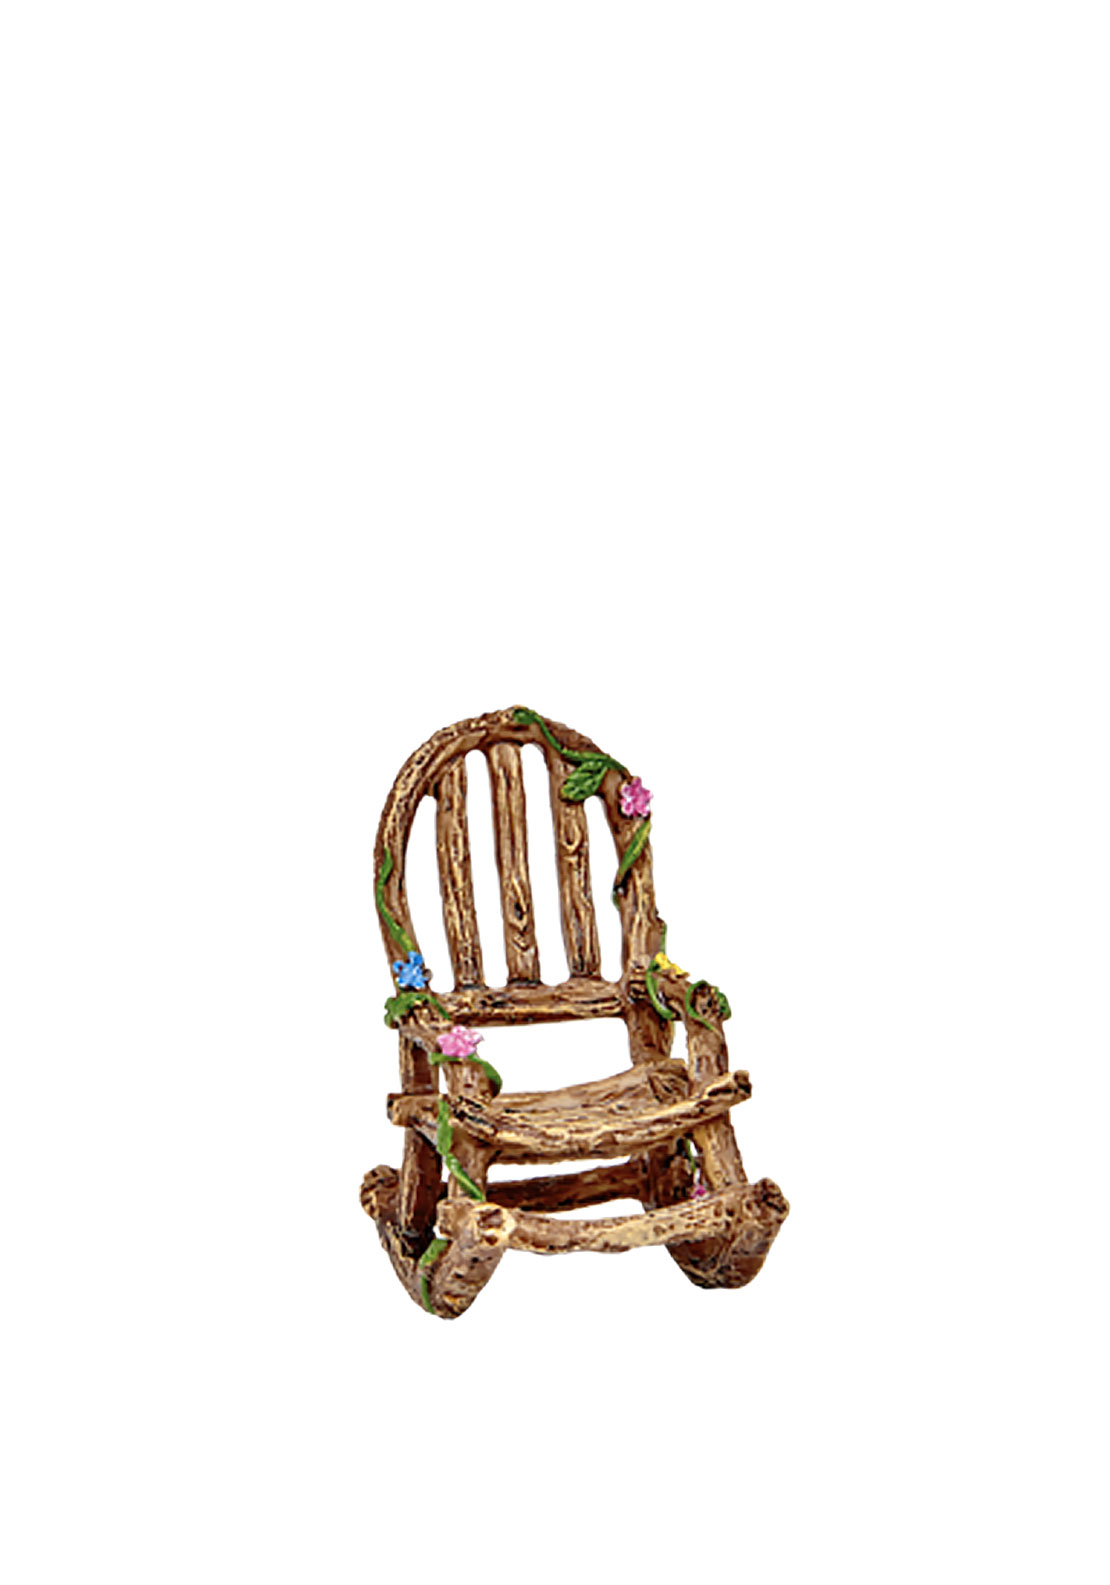 The irish fairy door company fairy rocking chair mcelhinneys for The irish fairy door company facebook